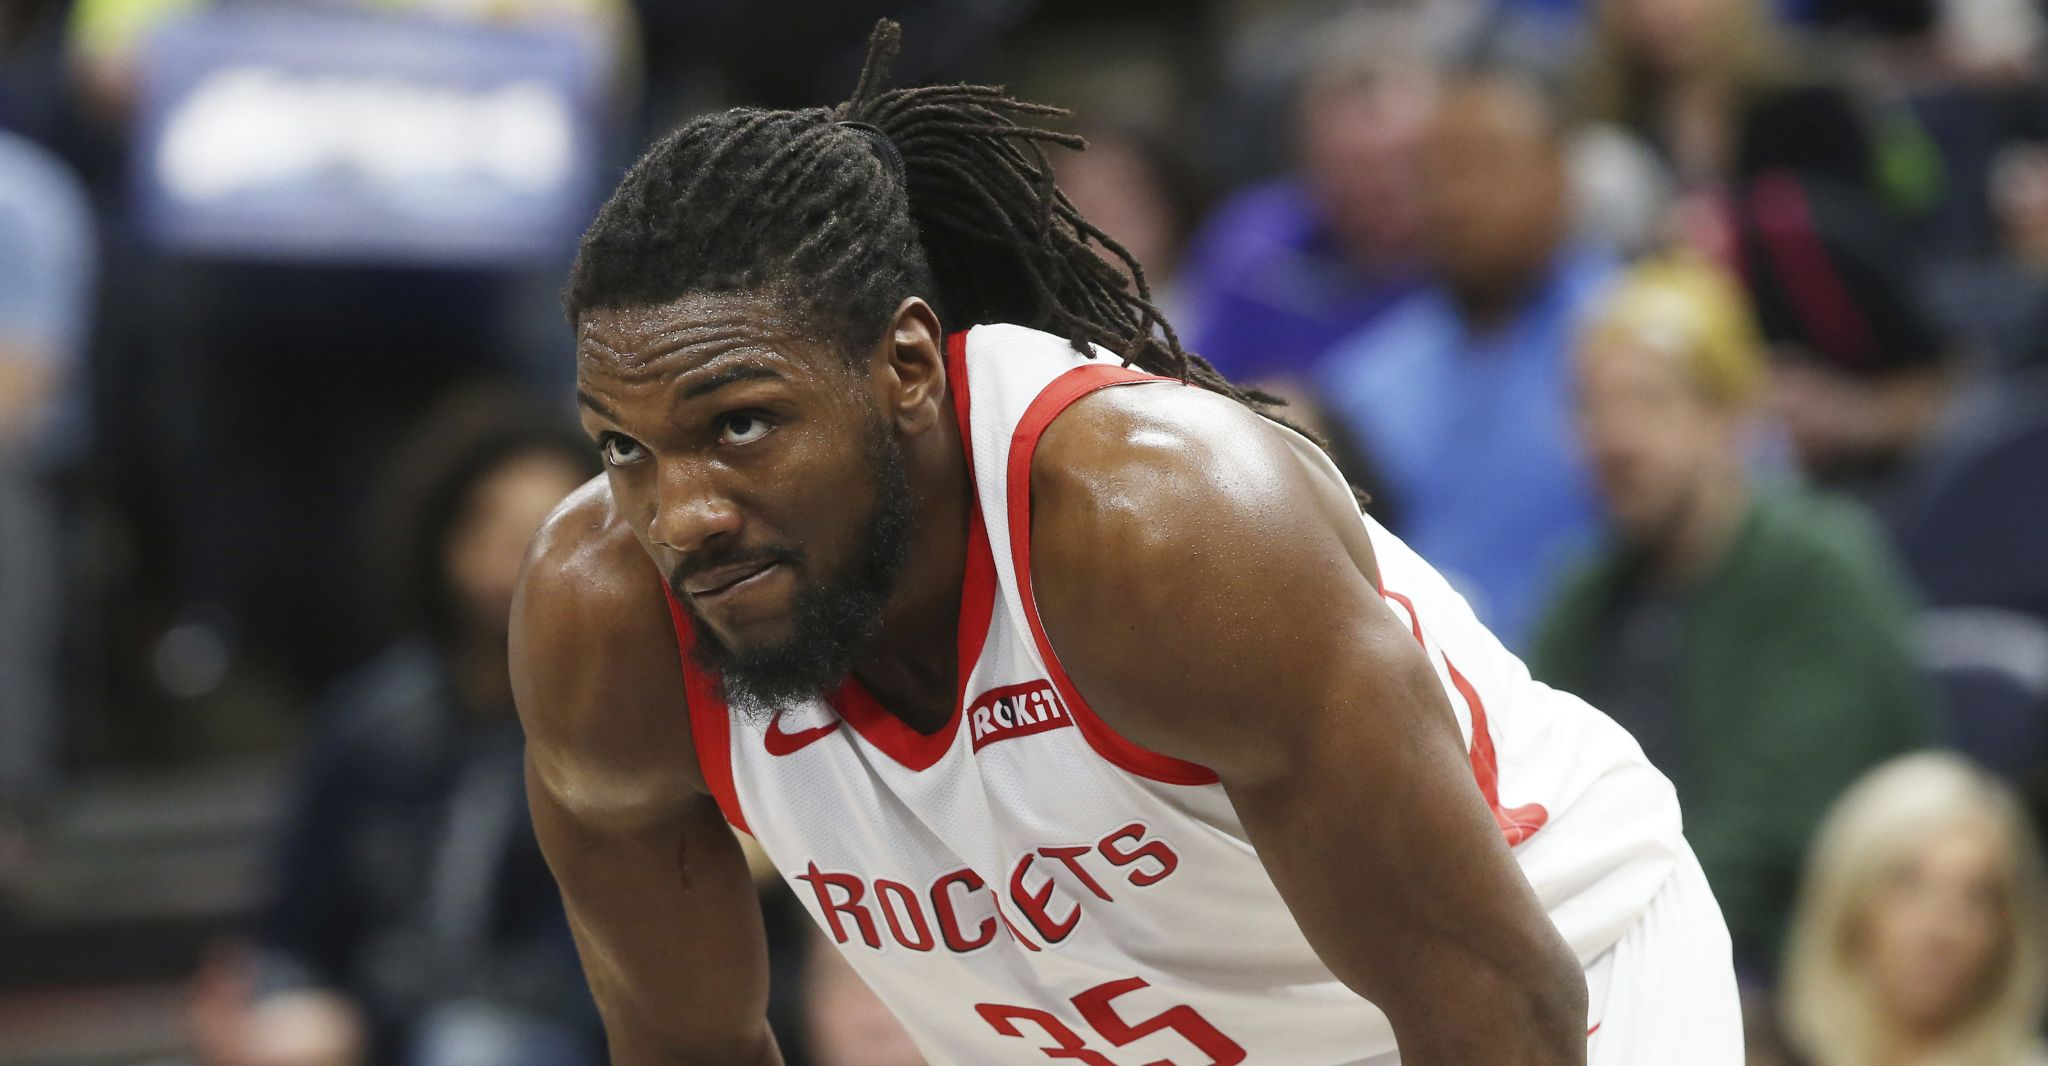 Rockets' Kenneth Faried shifts to power forward with return of Clint Capela